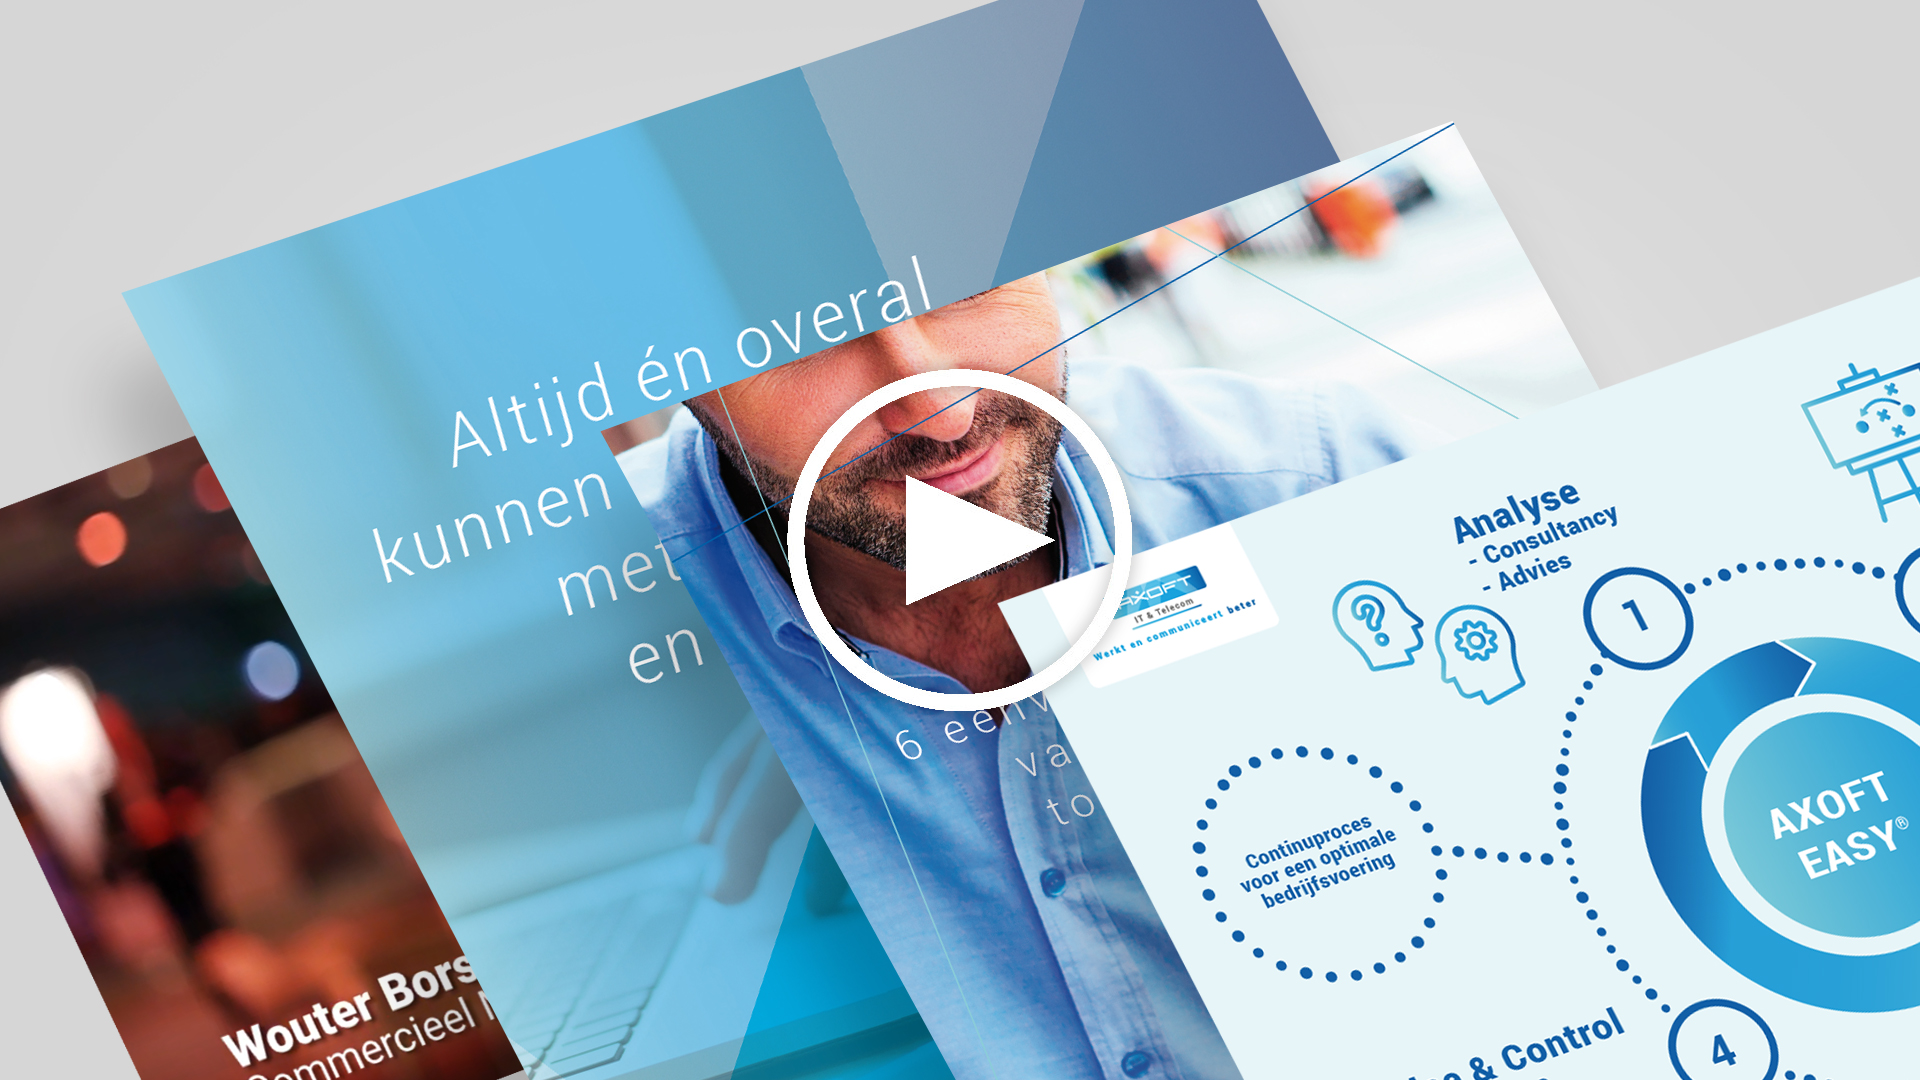 Axoft it telecom marketing communicatie rotterdam